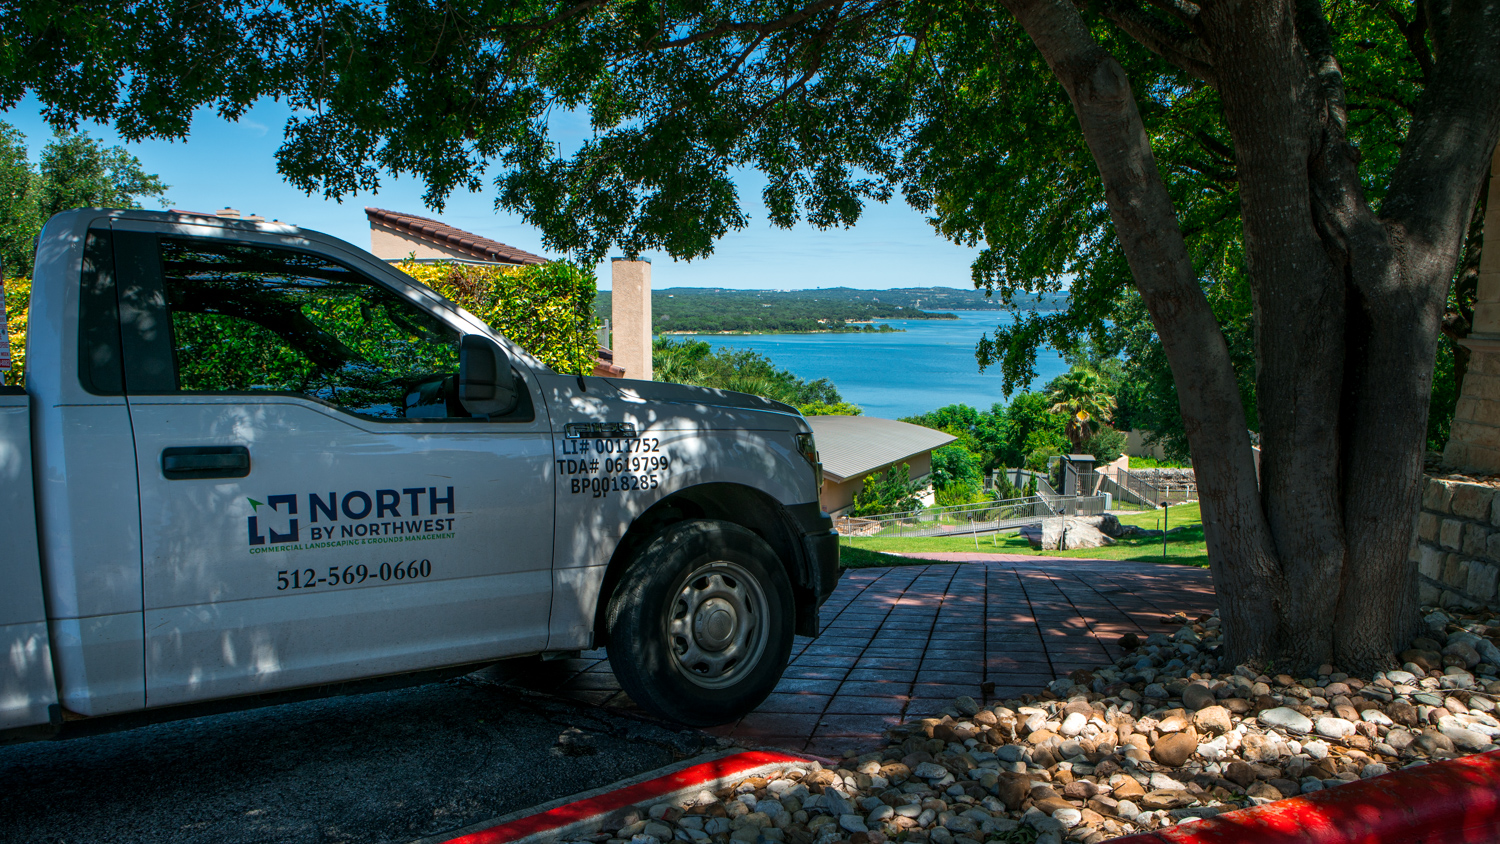 North By Northwest Landscaping truck near stone